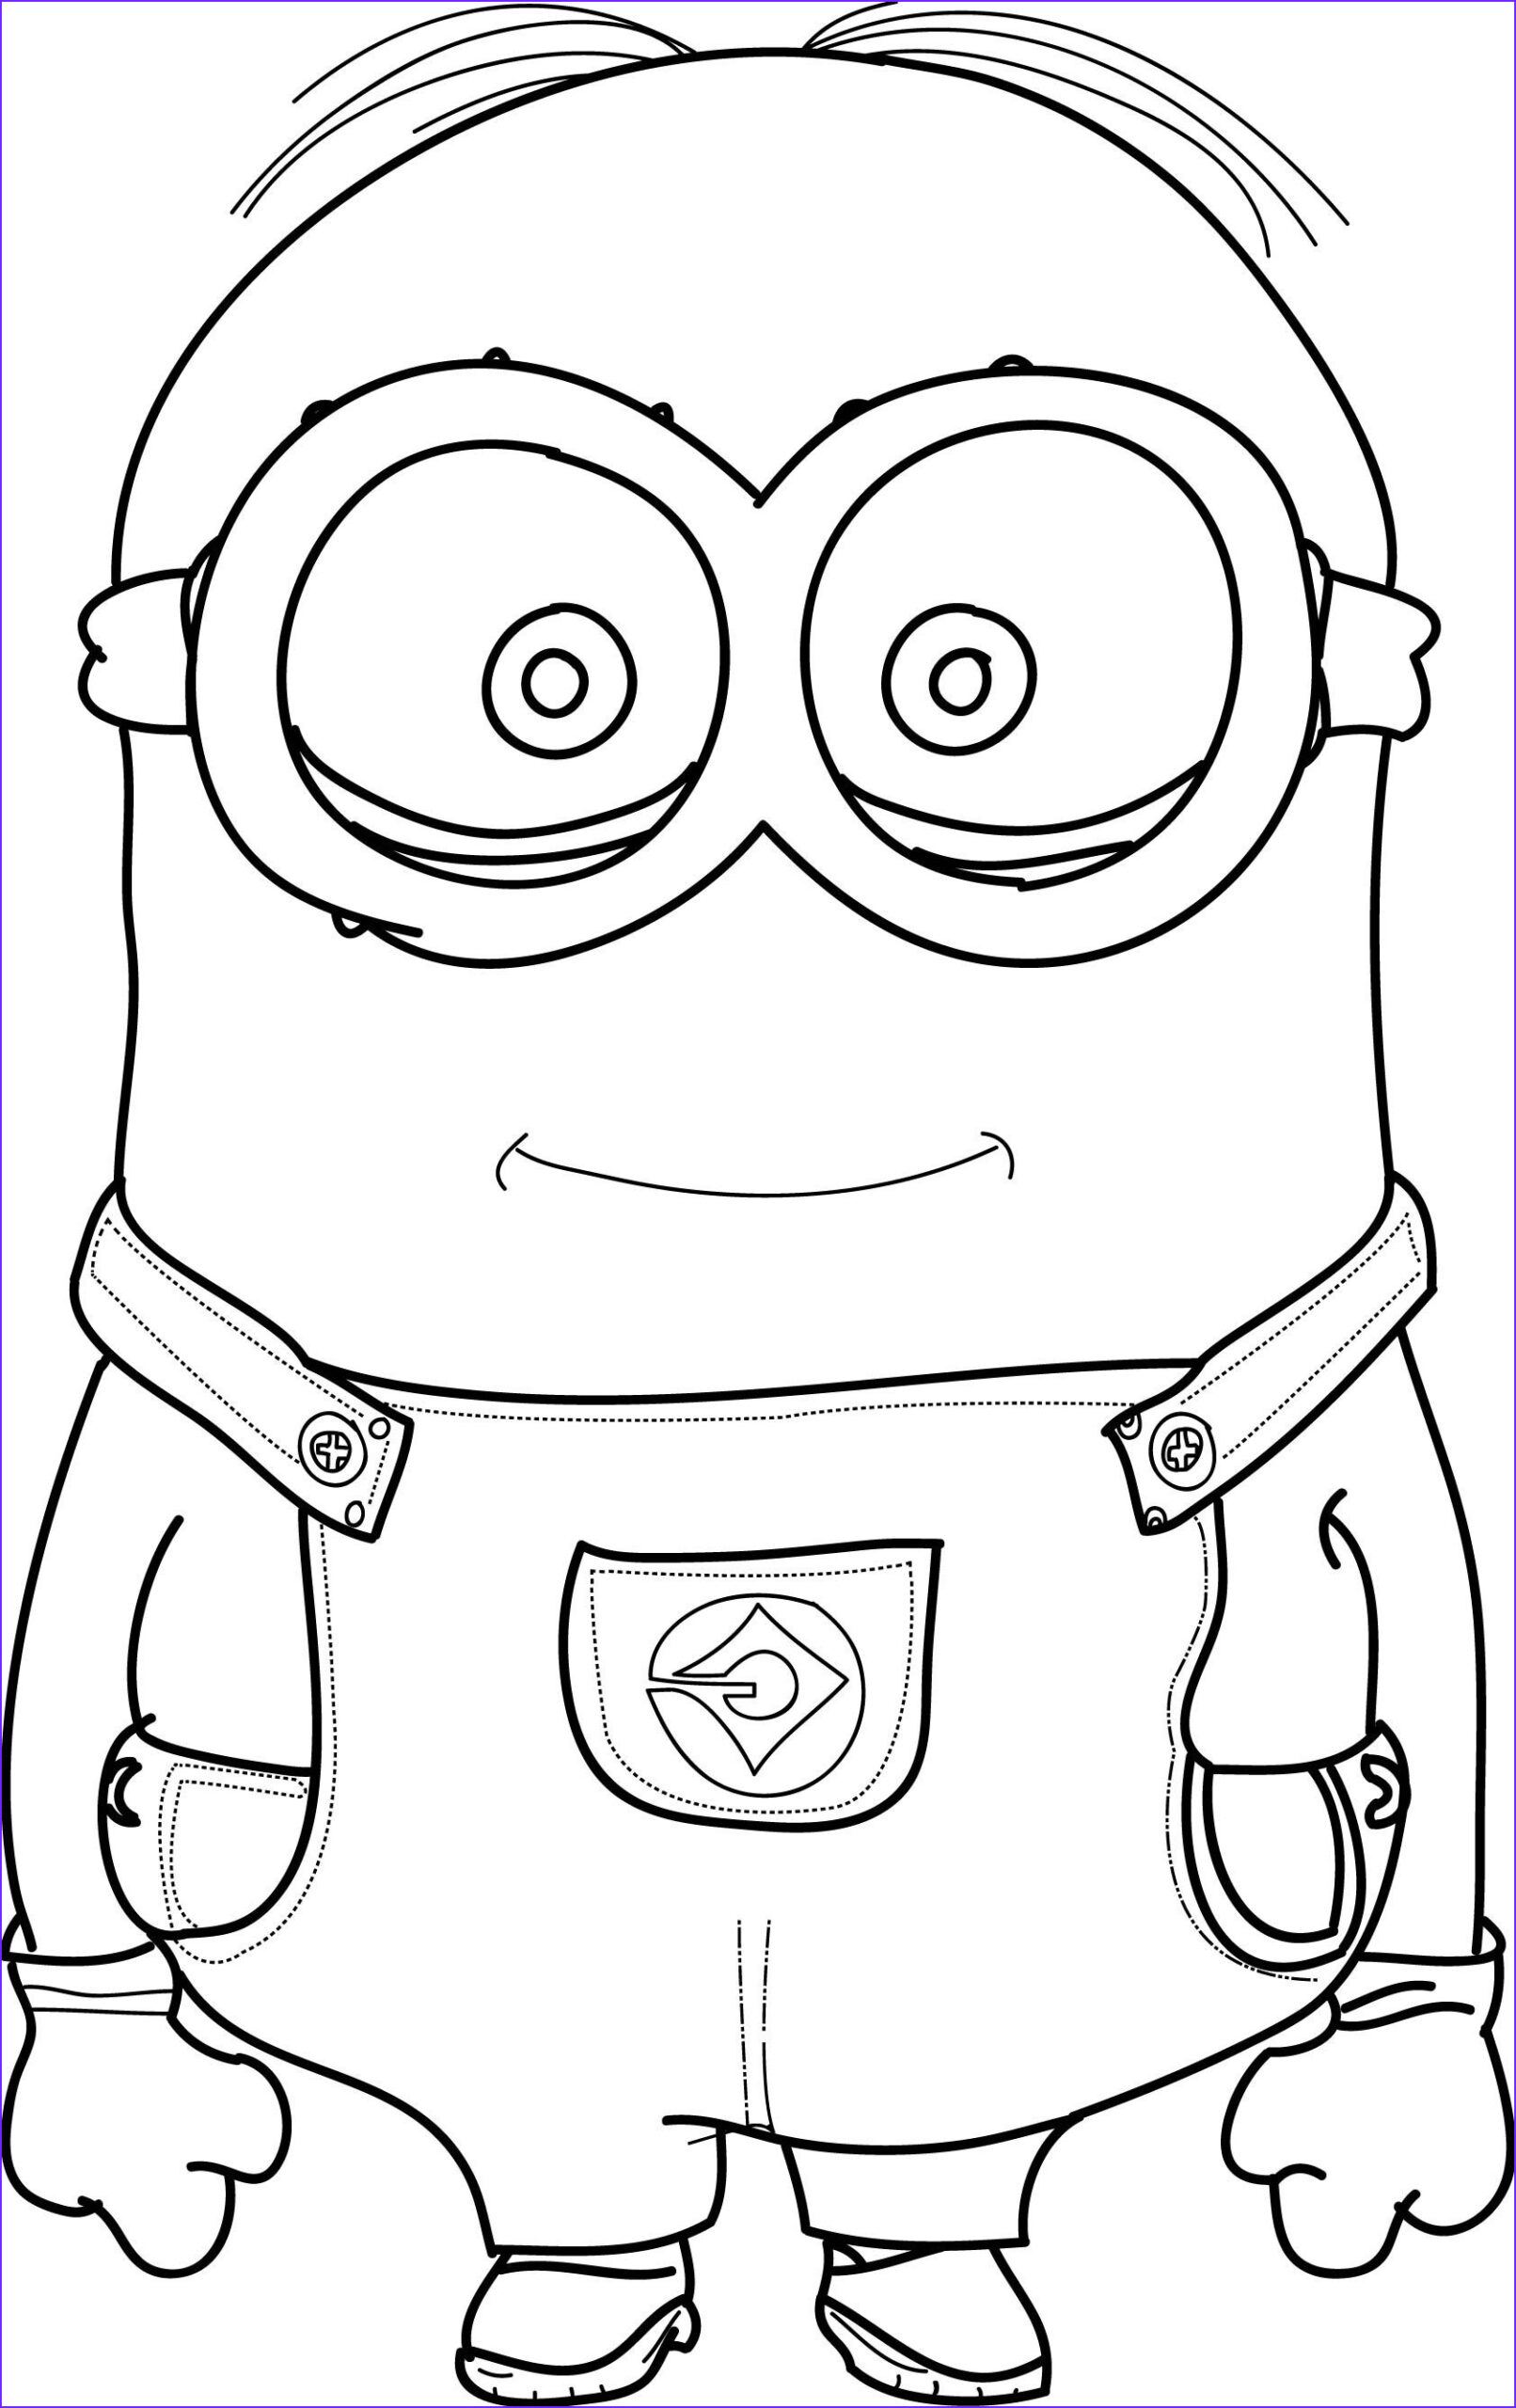 Free Minion Coloring Pages Elegant Collection Minions Coloring Pages Wecoloringpage